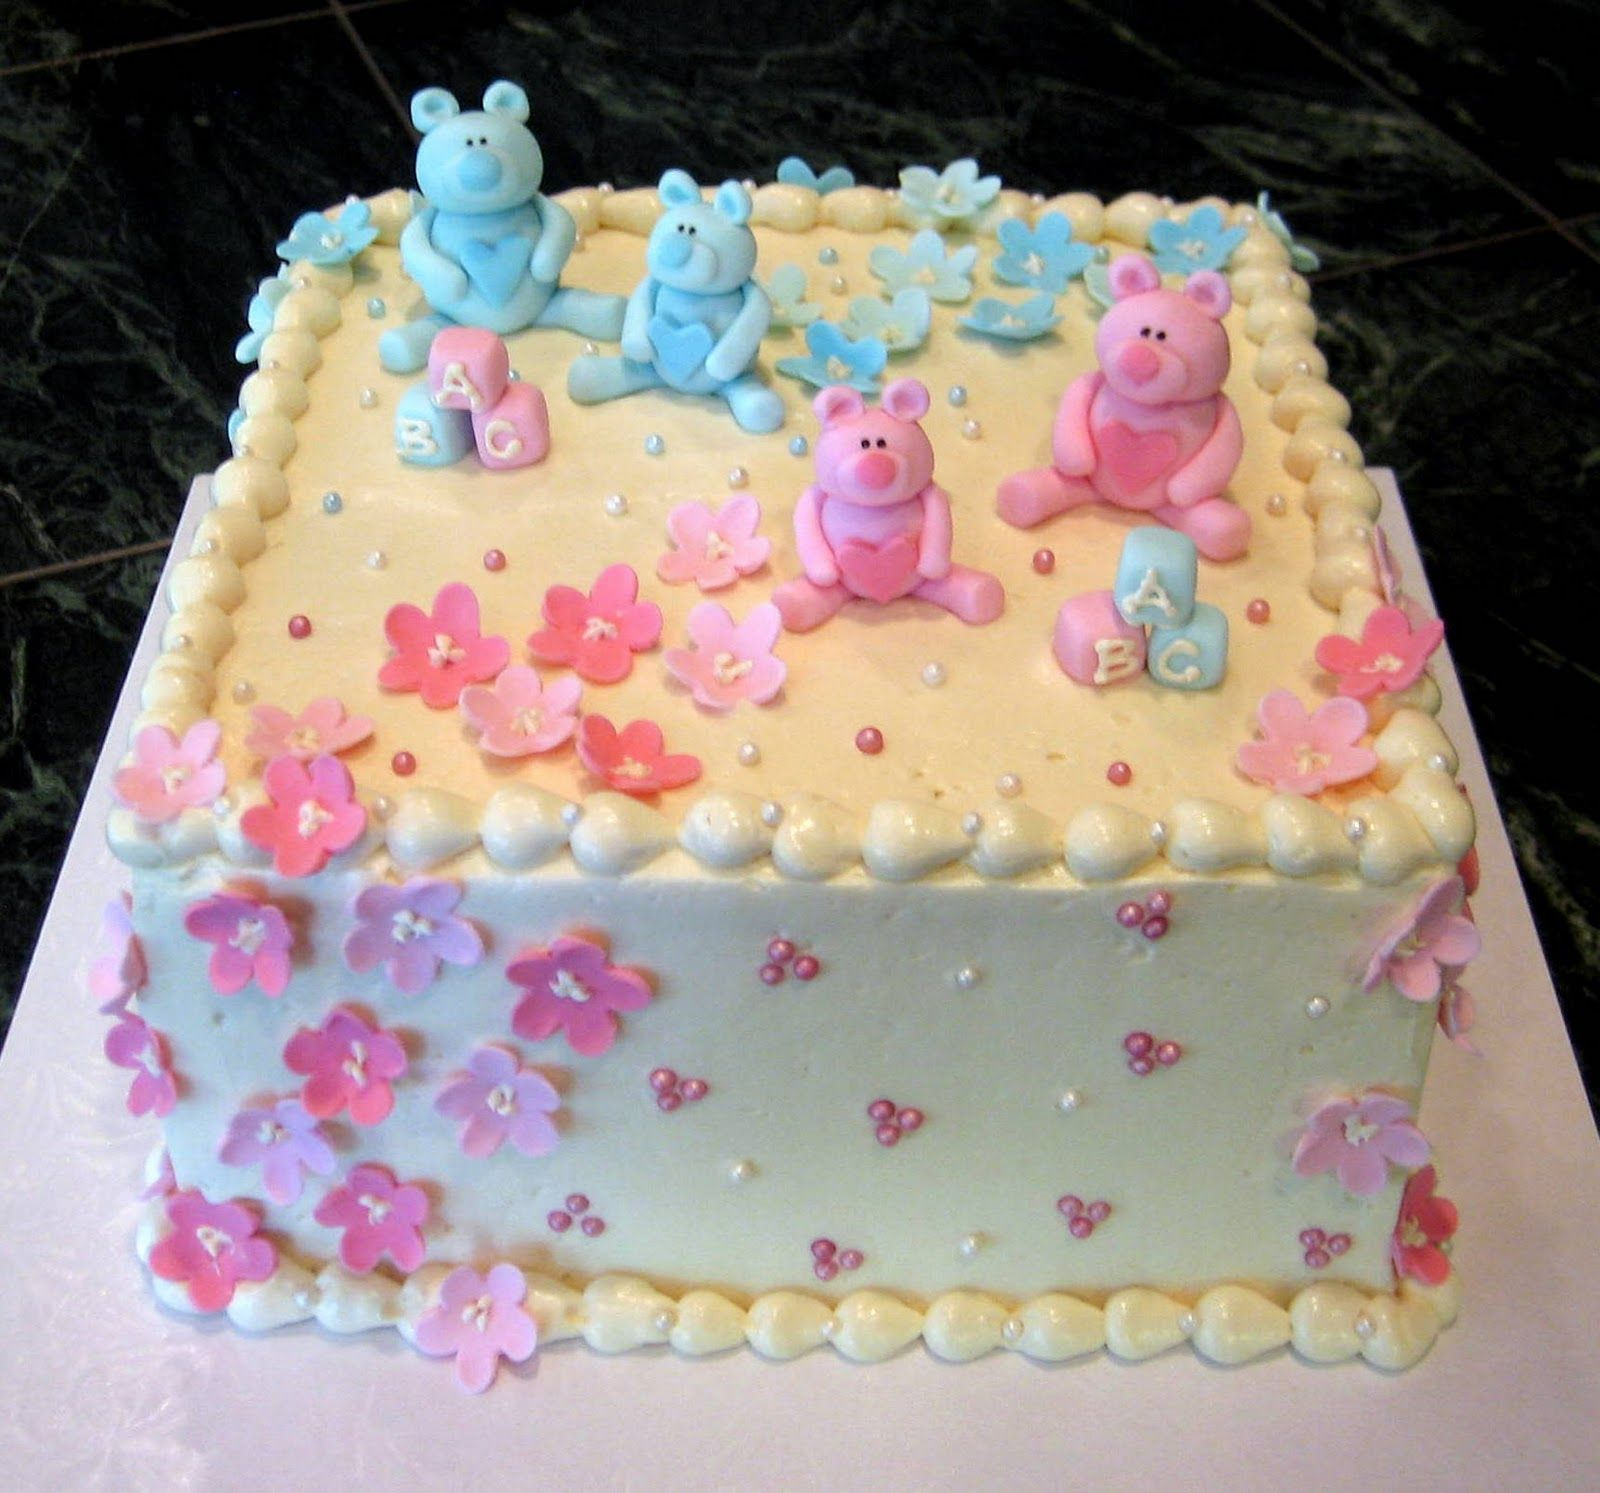 Pastel Baby Shower Cakes For Twin Boy And Girl | Jillicious Discoveries:  Catching Up U0026